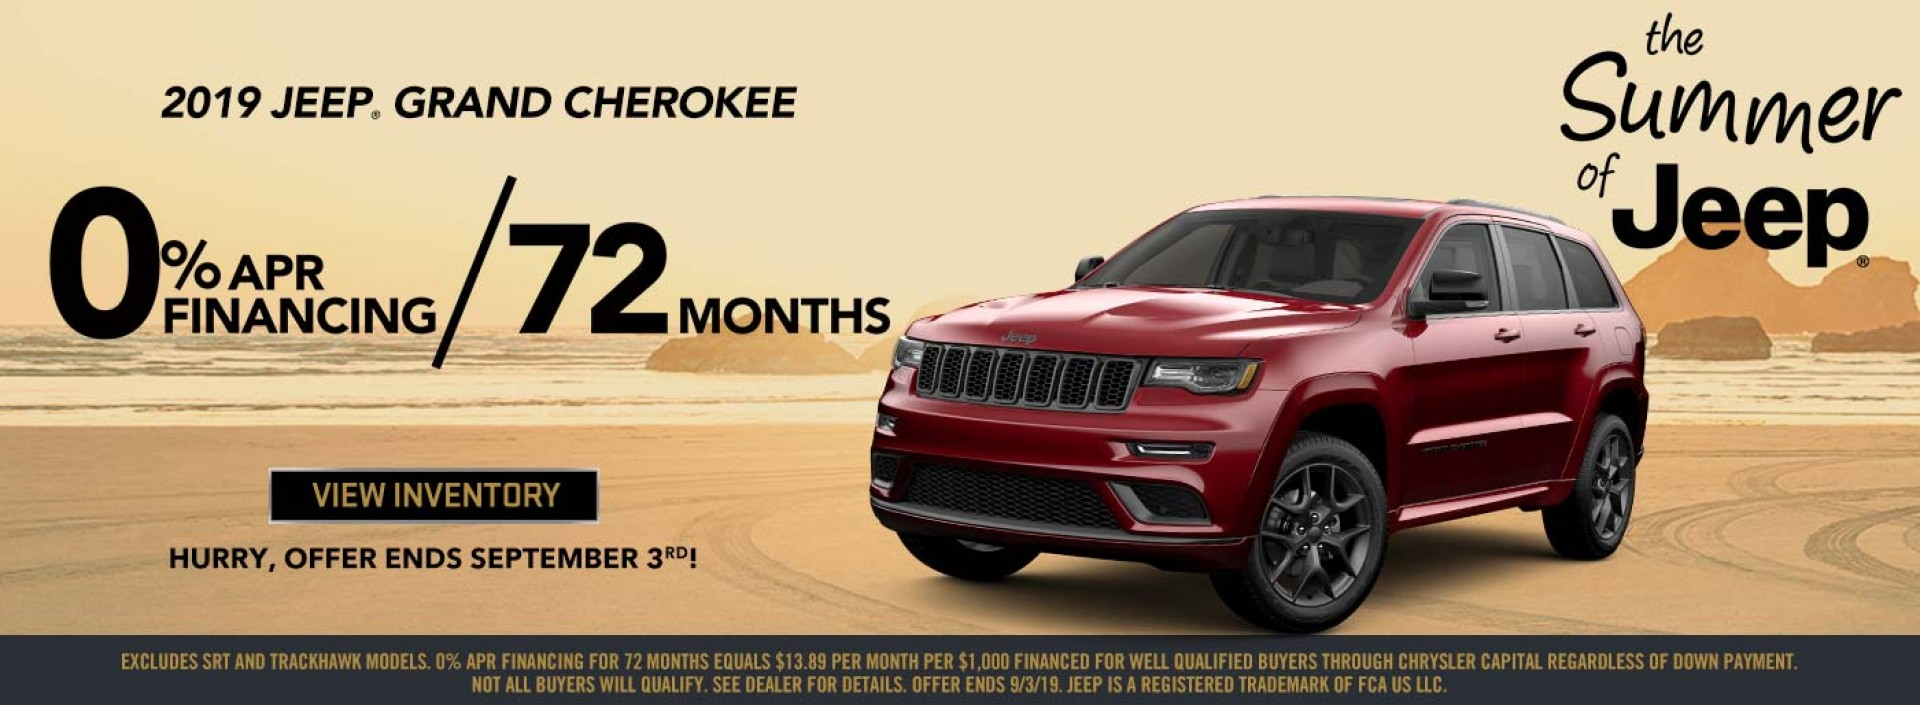 Van Horn Chrysler Dodge Jeep RAM of Stoughton | Stoughton, WI